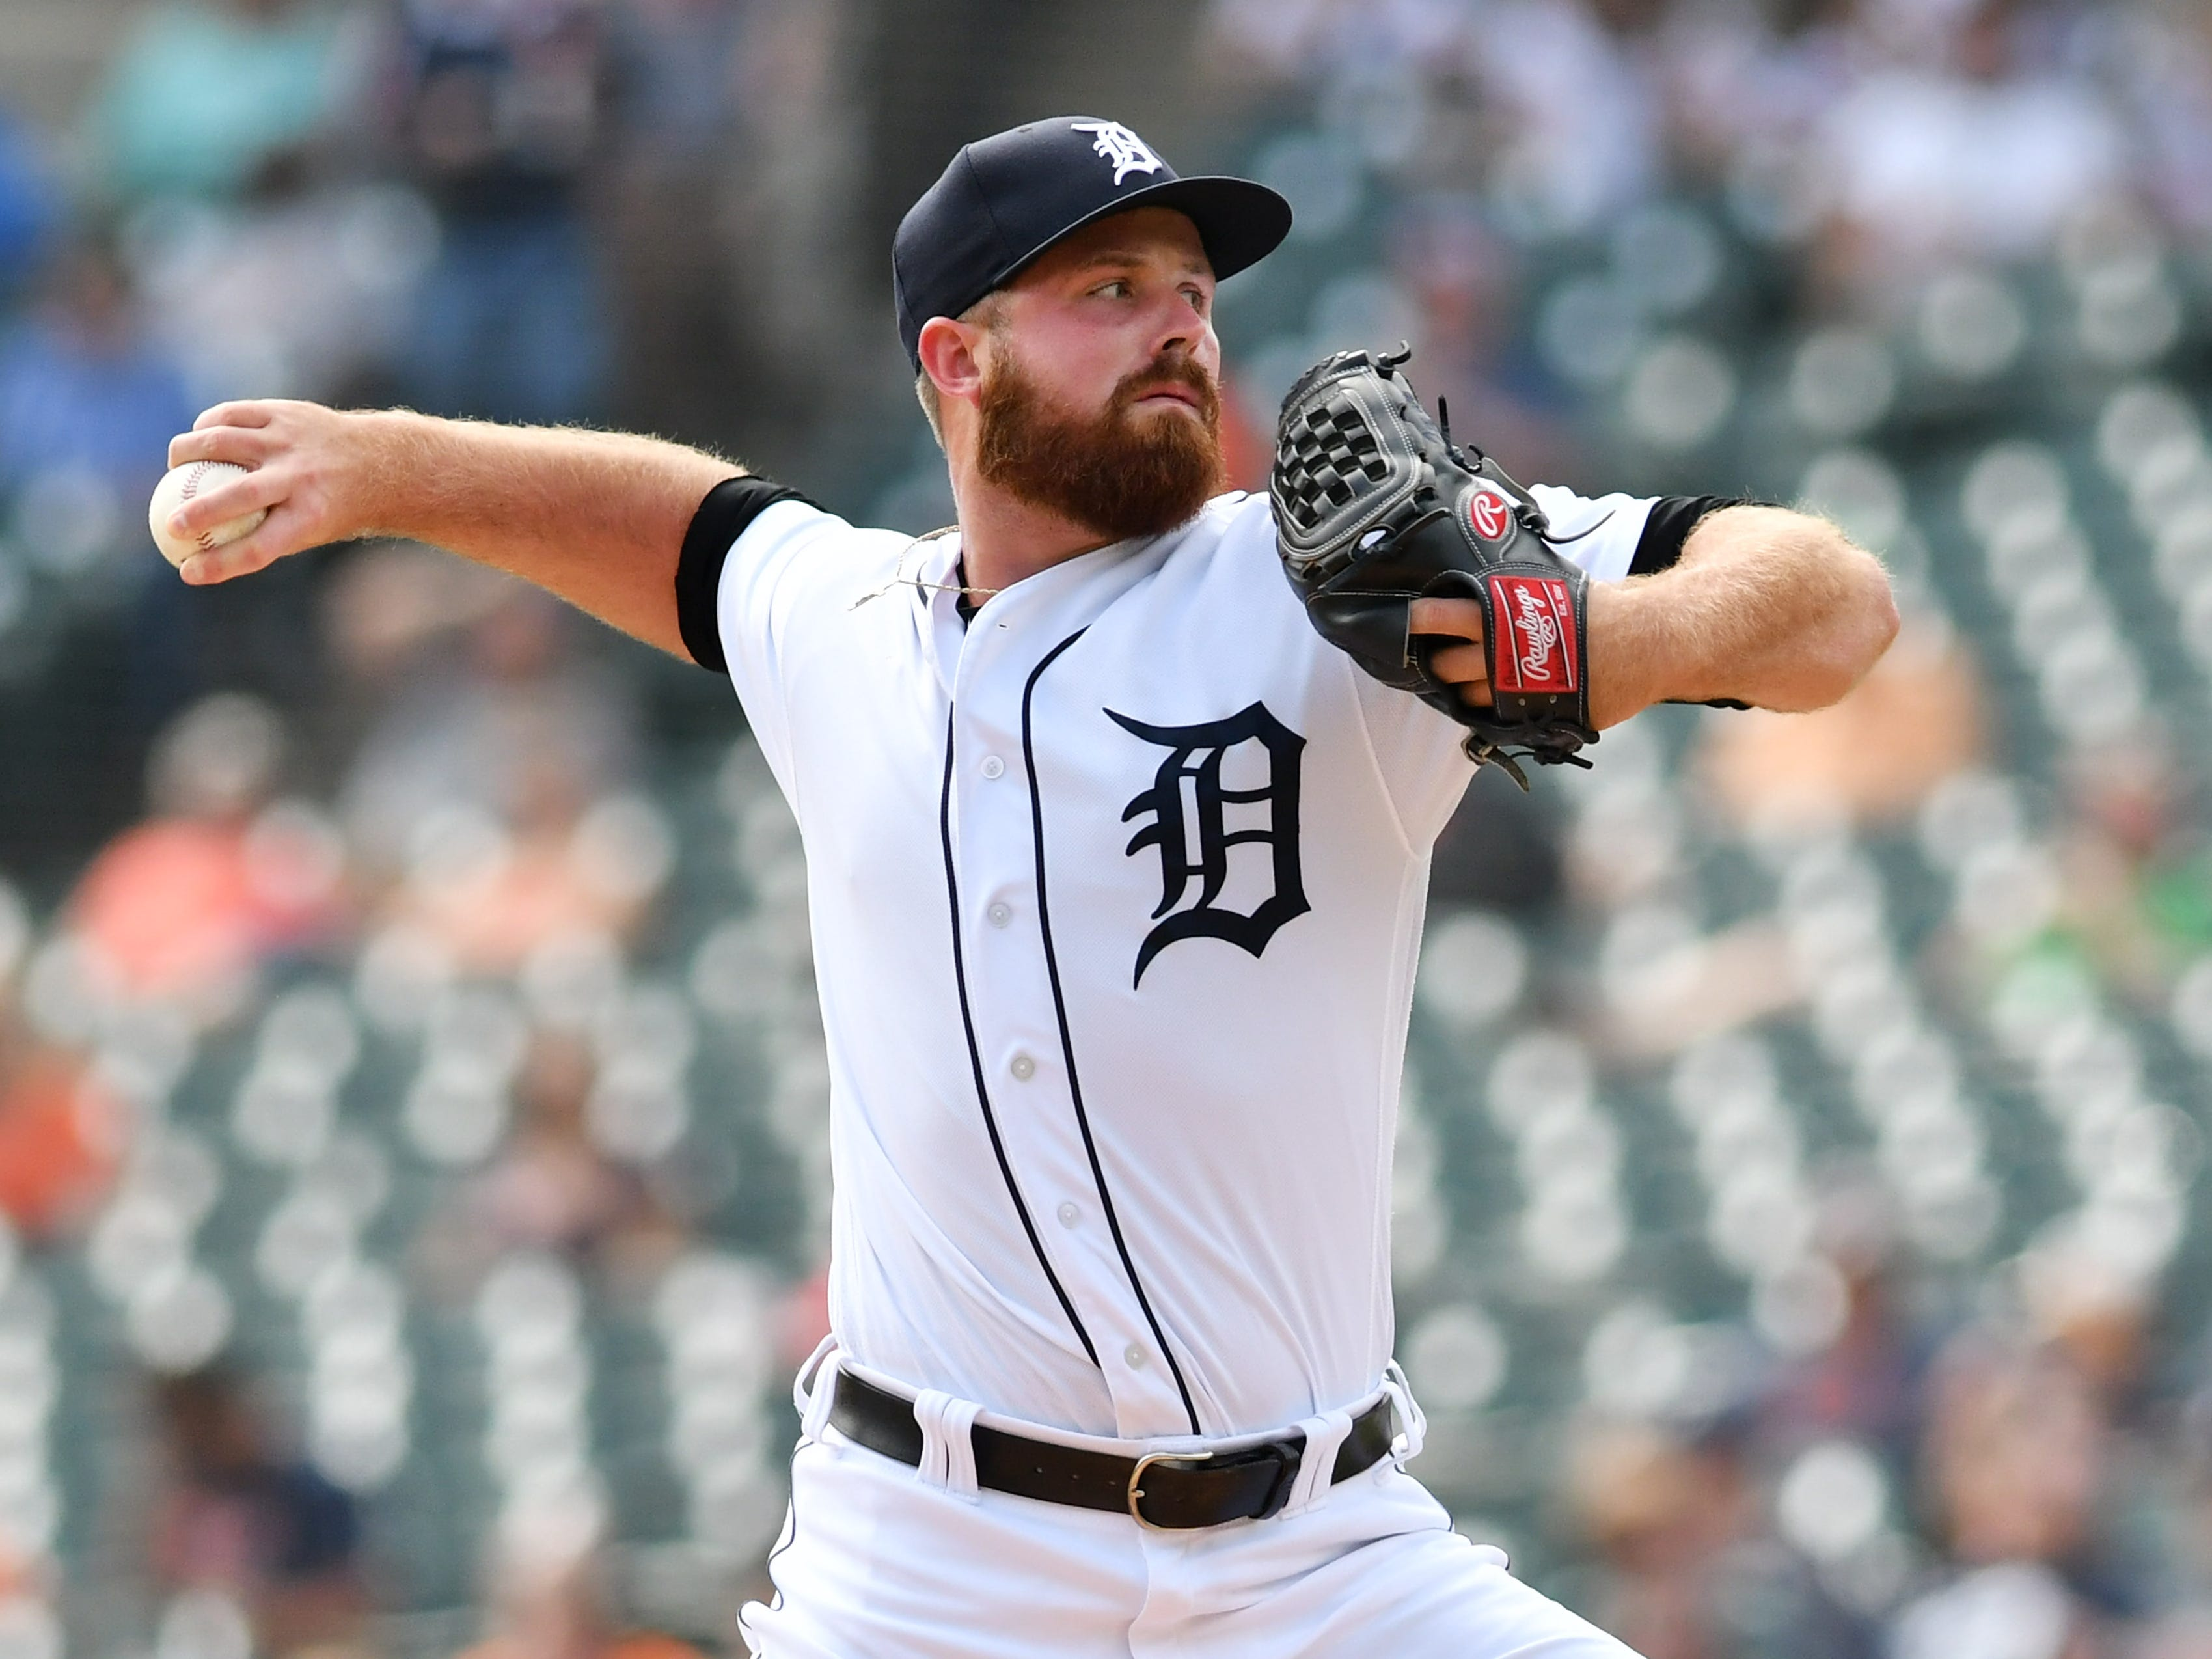 Buck Farmer (3-4, 4.15, 1.56): Nearly a third of the runs he allowed came in a six-game stretch at the end of May. After that, he was as steady as the Tigers had, although he was not asked to pitch much in high-leverage situations. Still, he went unscored upon in September (nine outings, 10.1 innings, .189 OBA). His change-up, when he commands it, is lethal (.176). But to earn a meatier role, he needs to improve his slider. Right-handed hitters are way too comfortable against him (hitting .320 overall and .308 against his slider)  Mid-term grade: C-minus Second-half grade: B Final grade: C